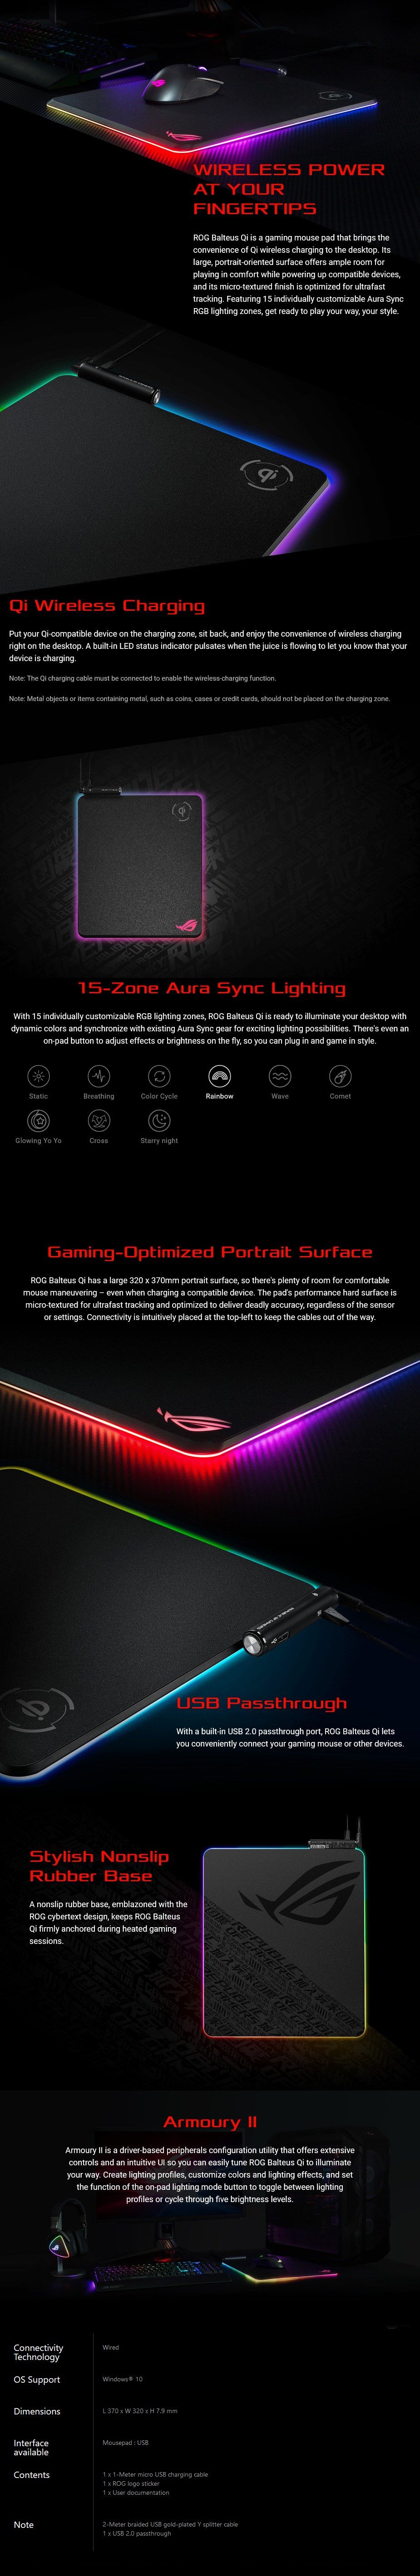 asus-rog-balteus-qi-wireless-charging-mouse-pad-ac31979-5.jpg